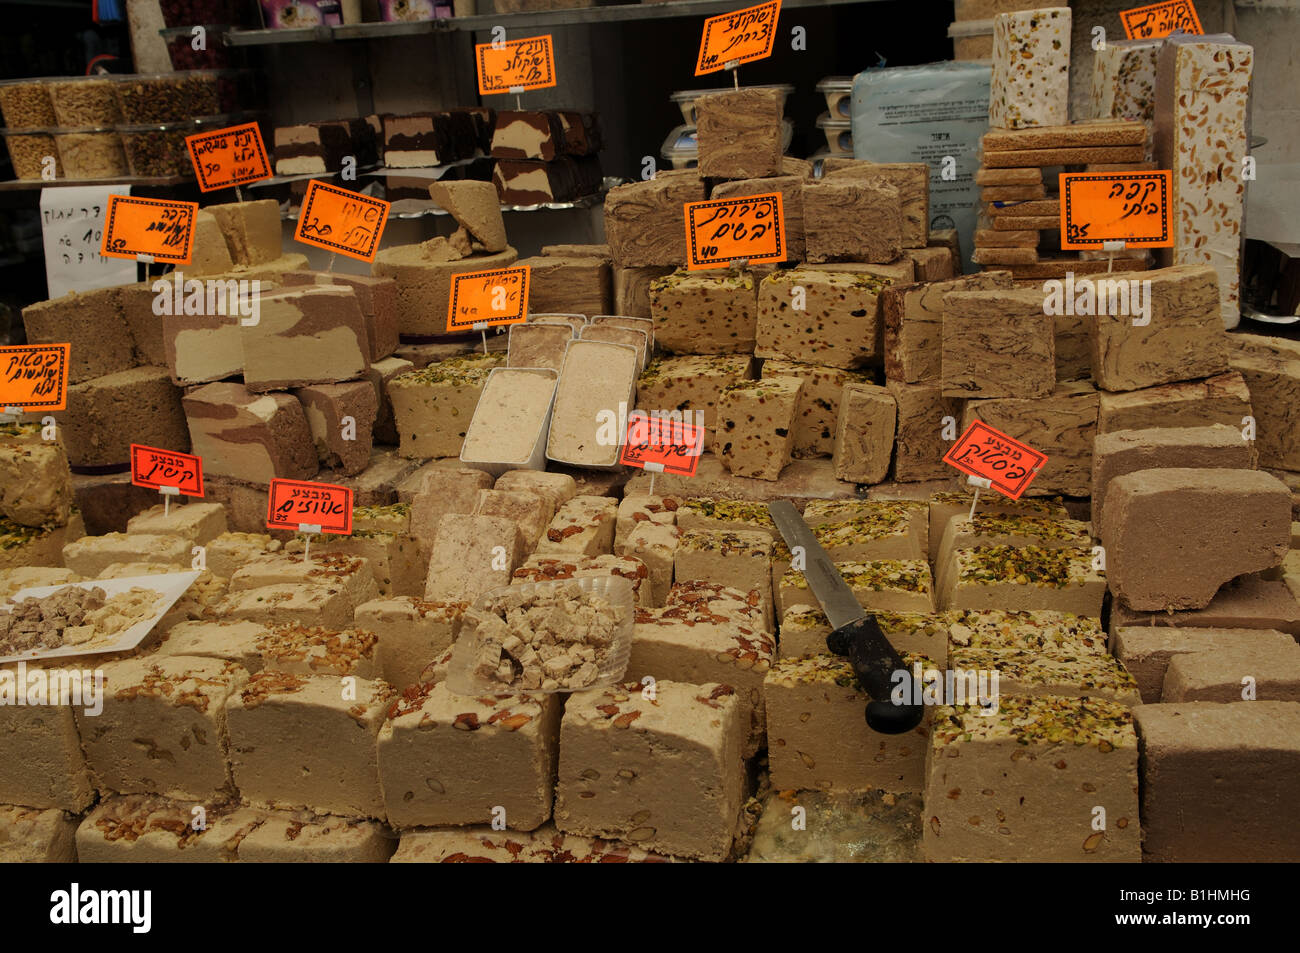 A large selection of Halva sweets on sale in the colorful Machne Yehuda market - Stock Image